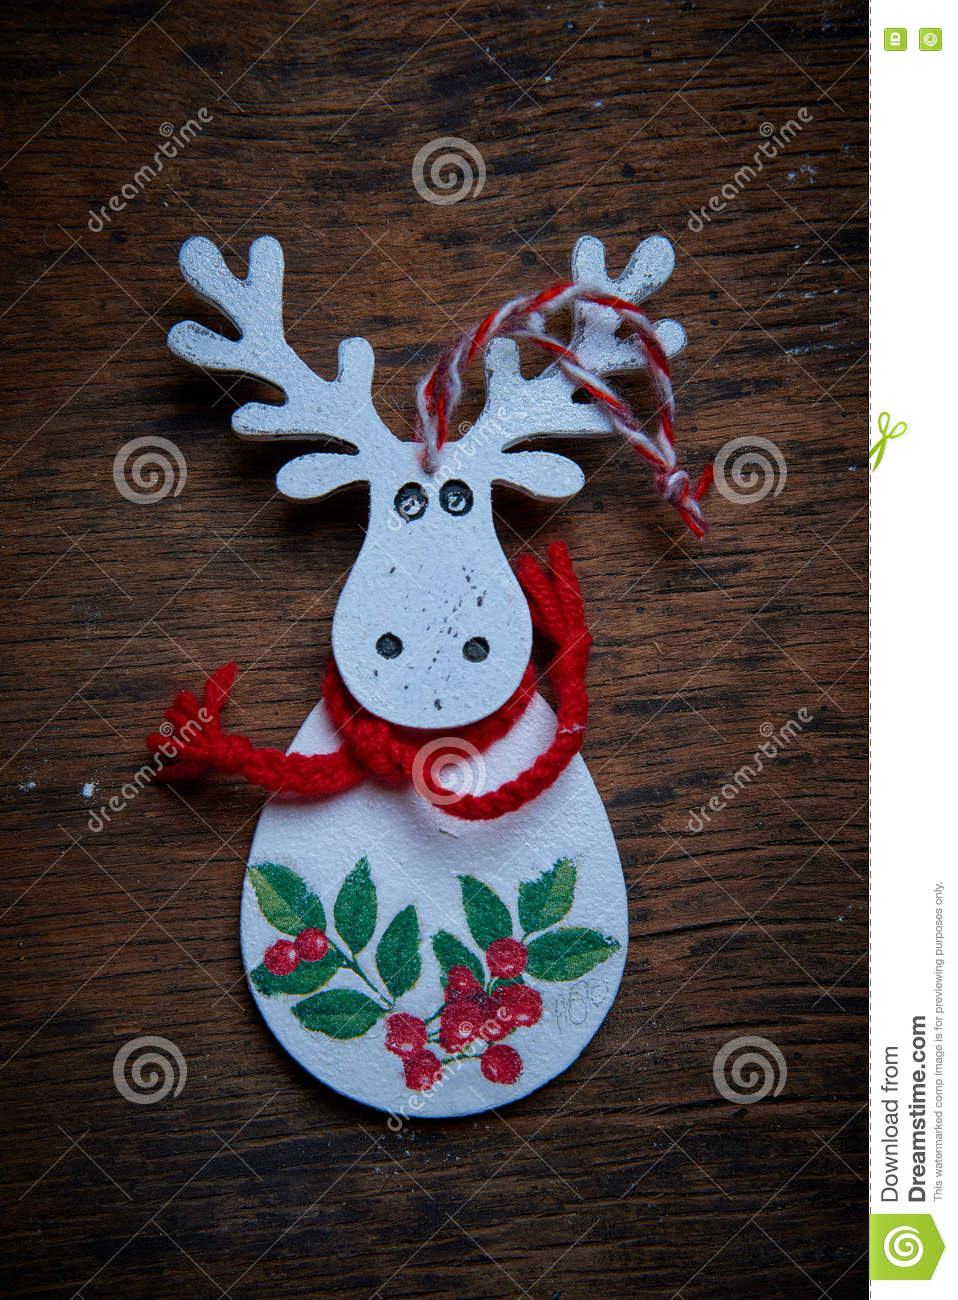 Christmas scenery. A white elk with the red drawing against a dark background.